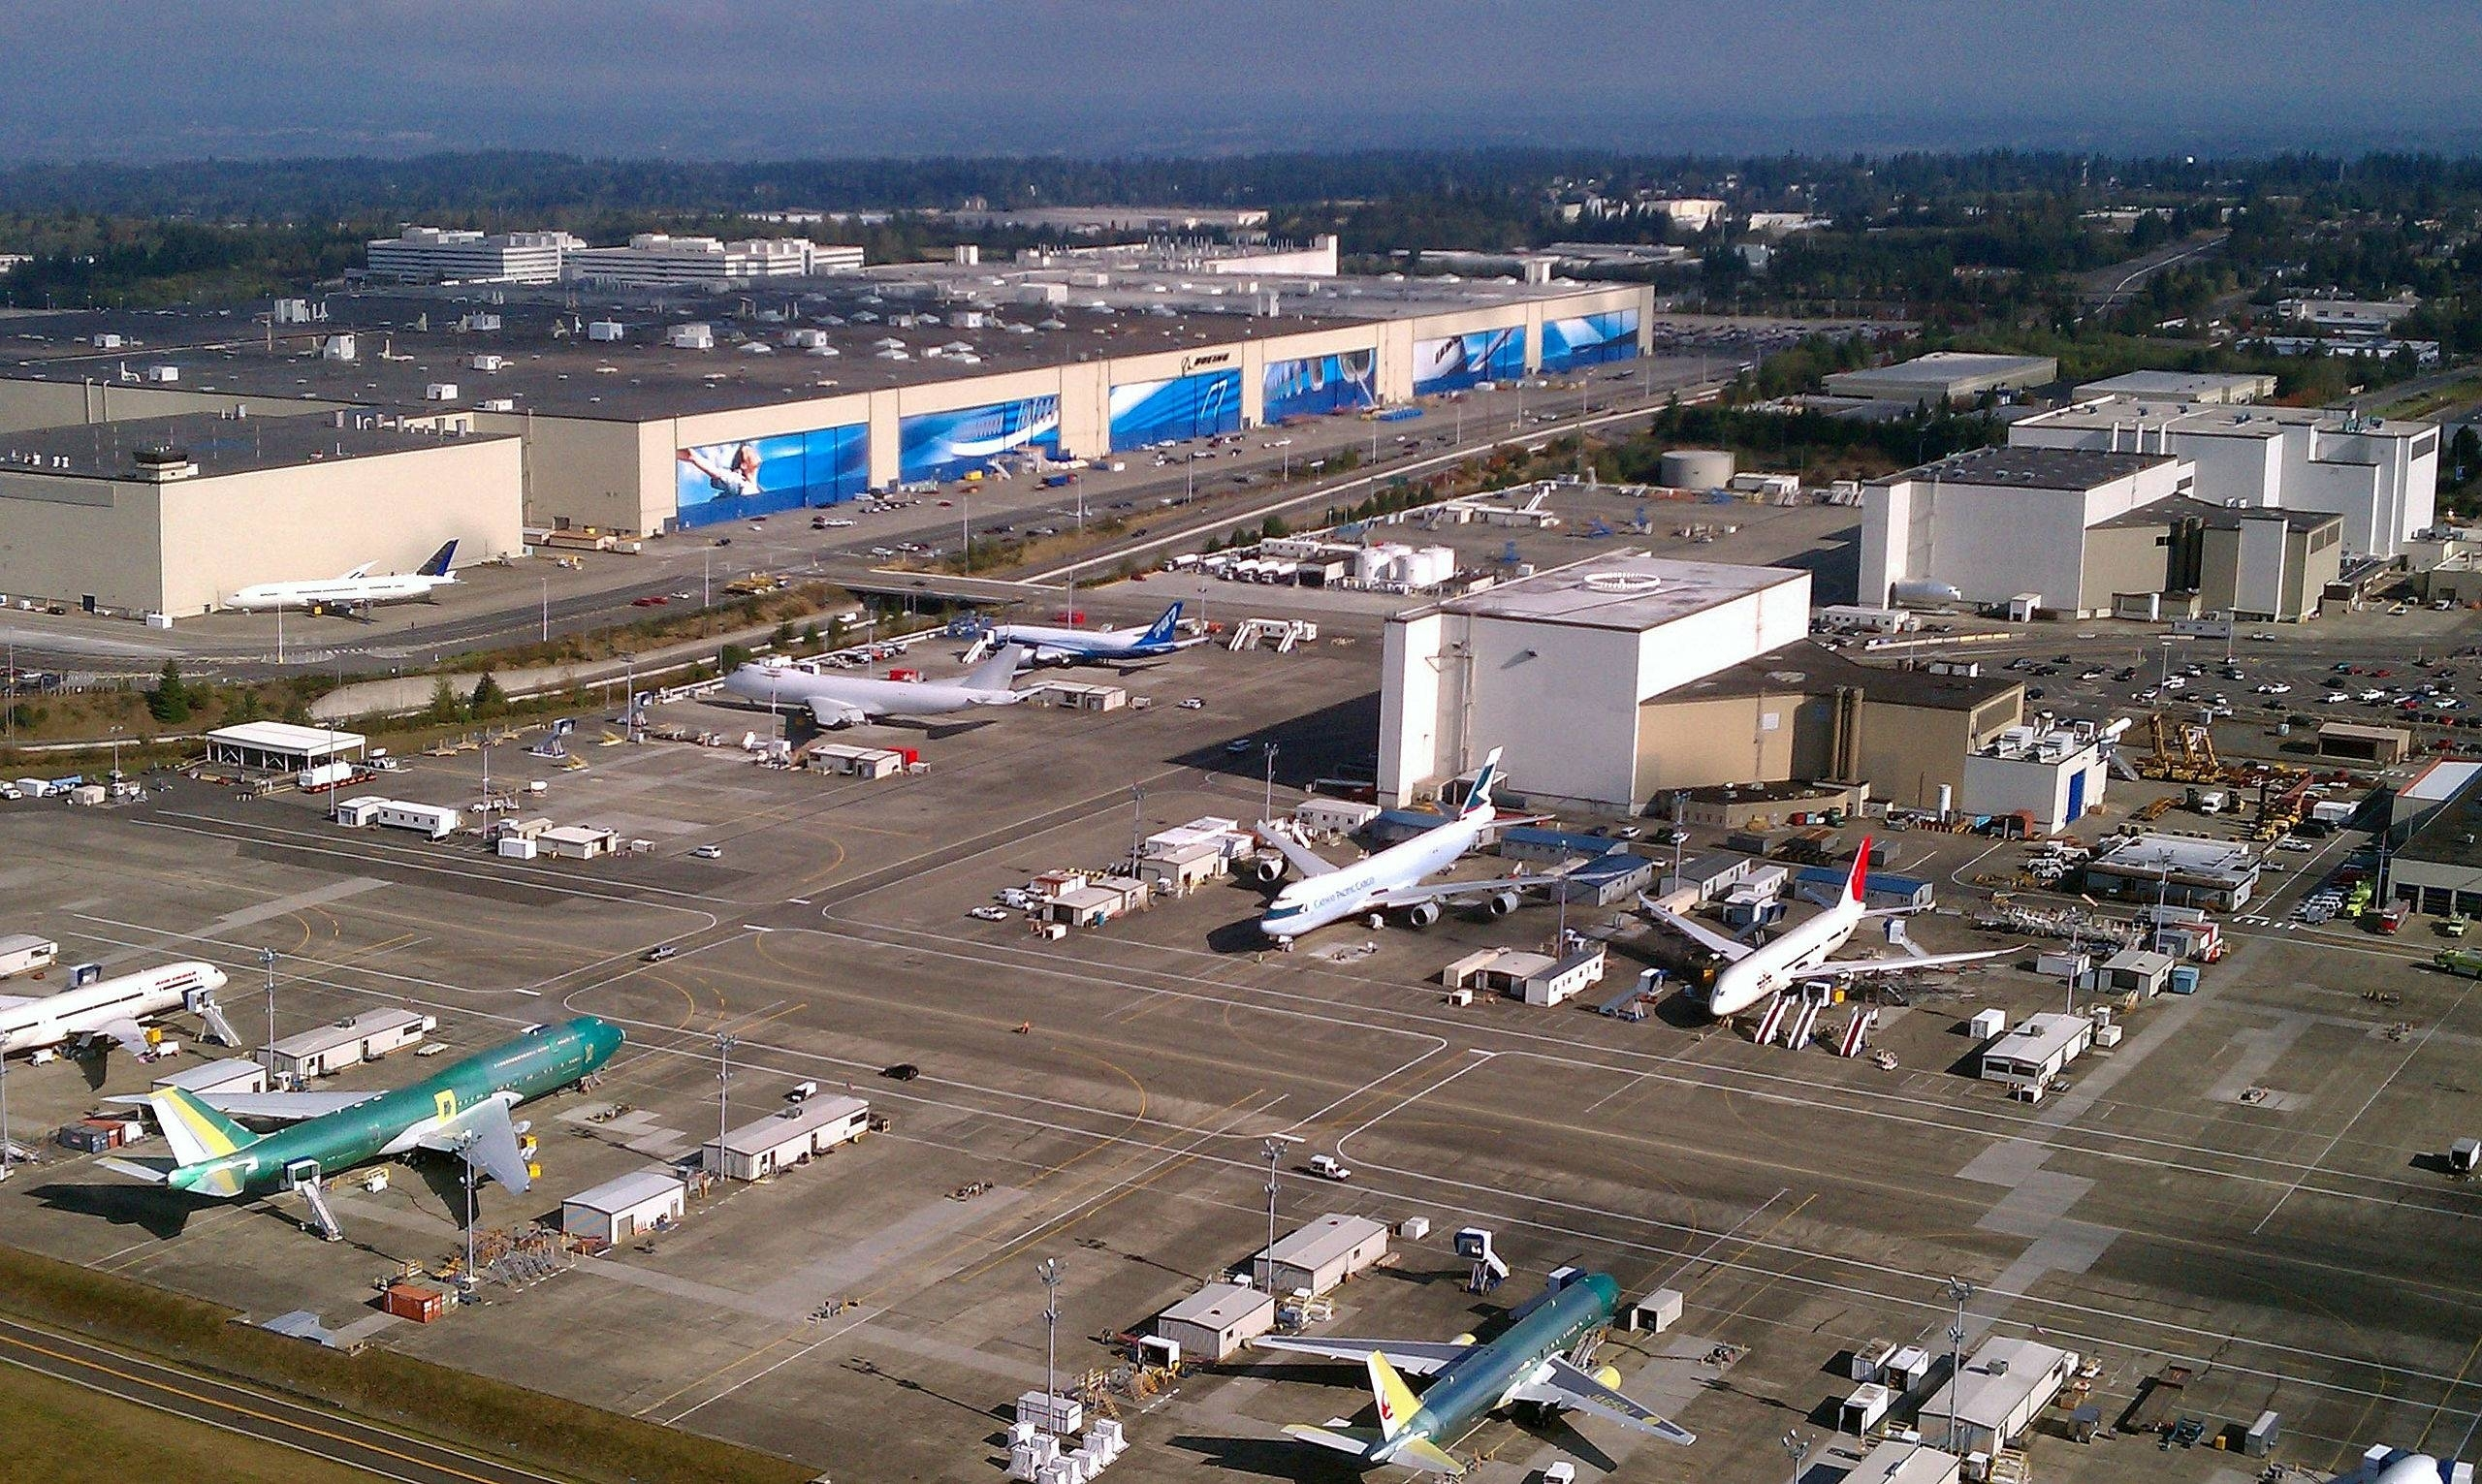 Where Is The Taxiway Between The Boeing Factory And Paine with regard to Boeing Everett Factory Google Maps